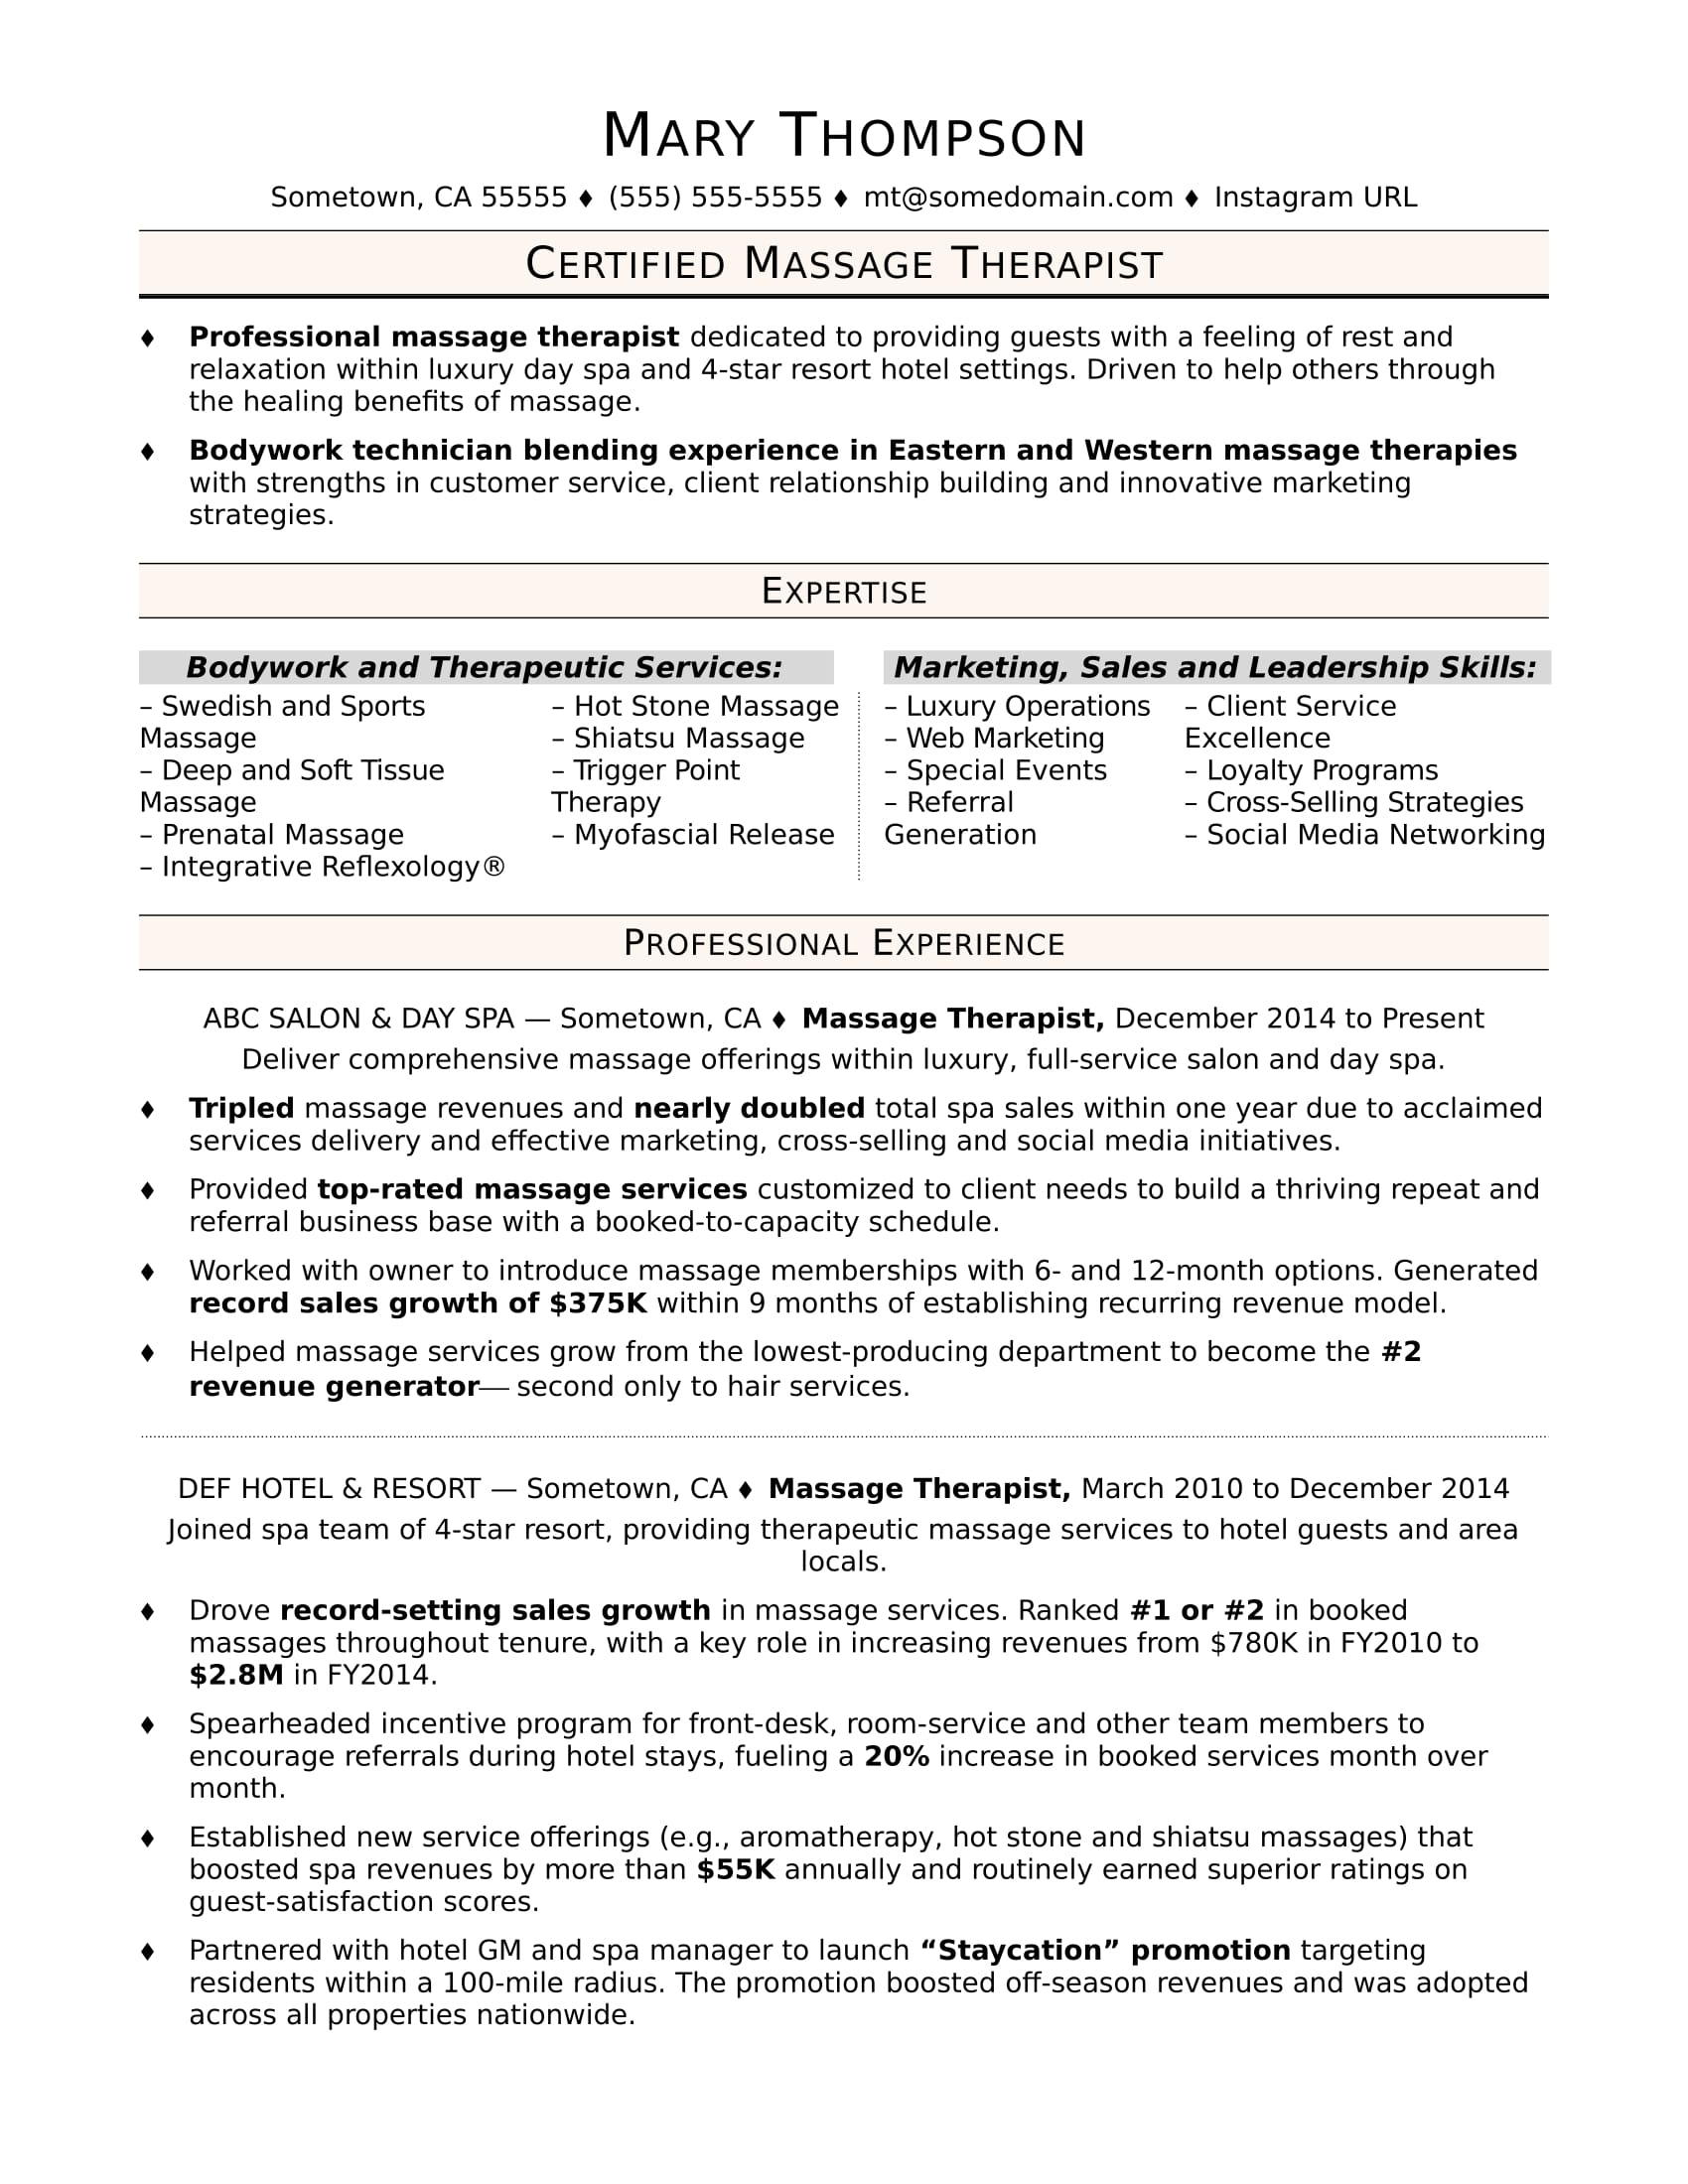 Marvelous Massage Therapist Resume Sample Regarding Sample Massage Therapist Resume